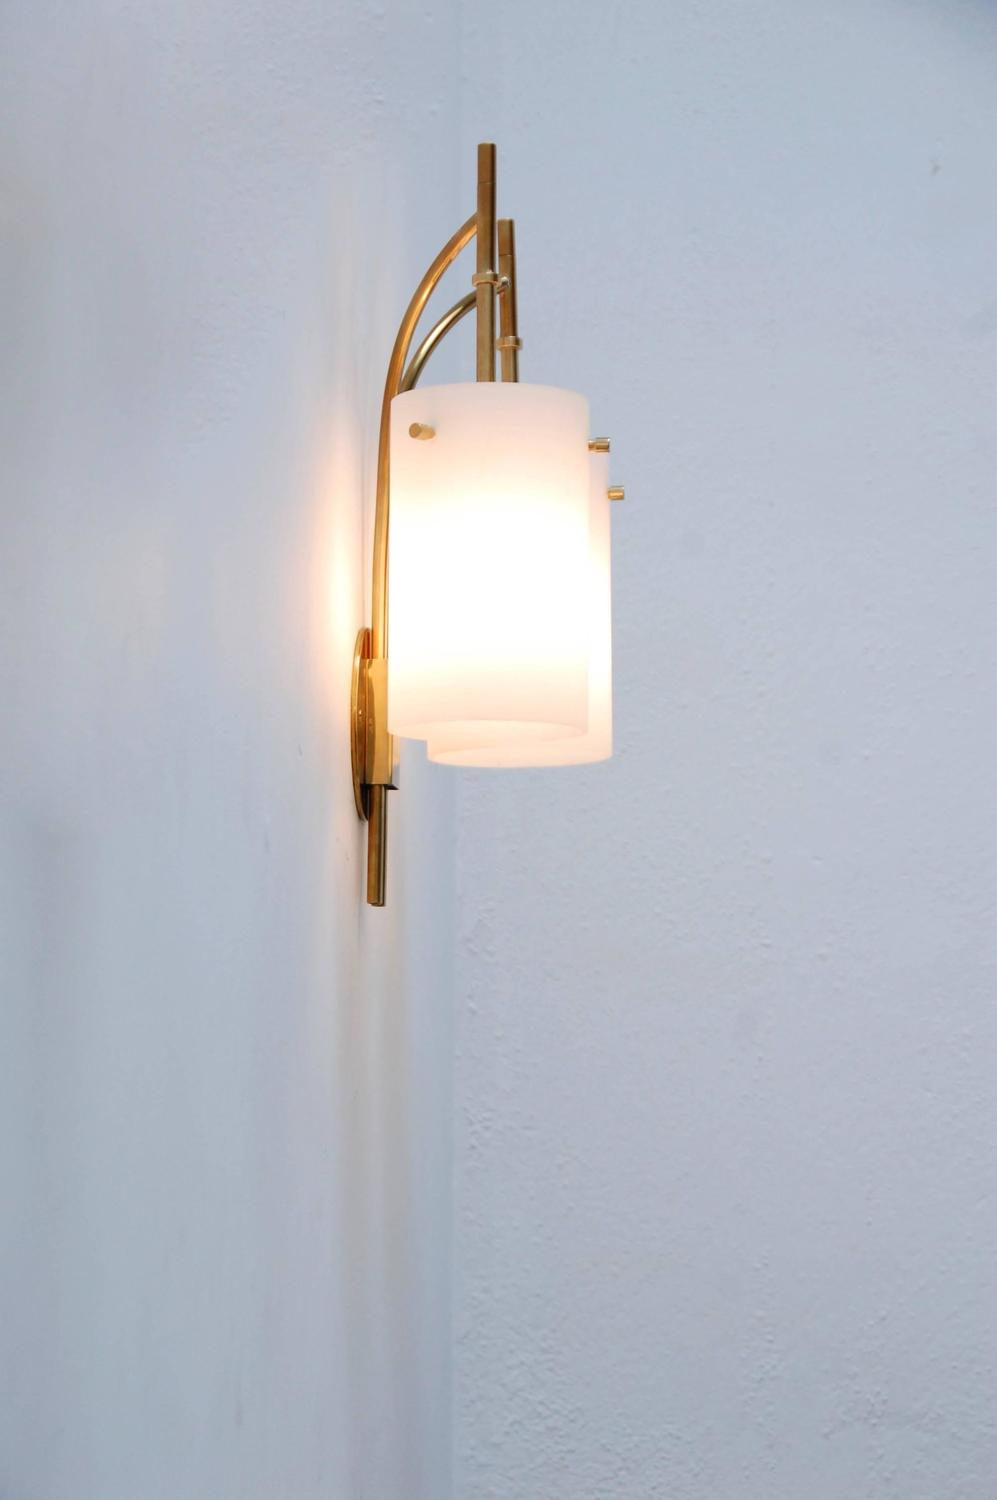 Double Shade Wall Sconces : 1950s Italian Double Shade Cylinder Sconce For Sale at 1stdibs